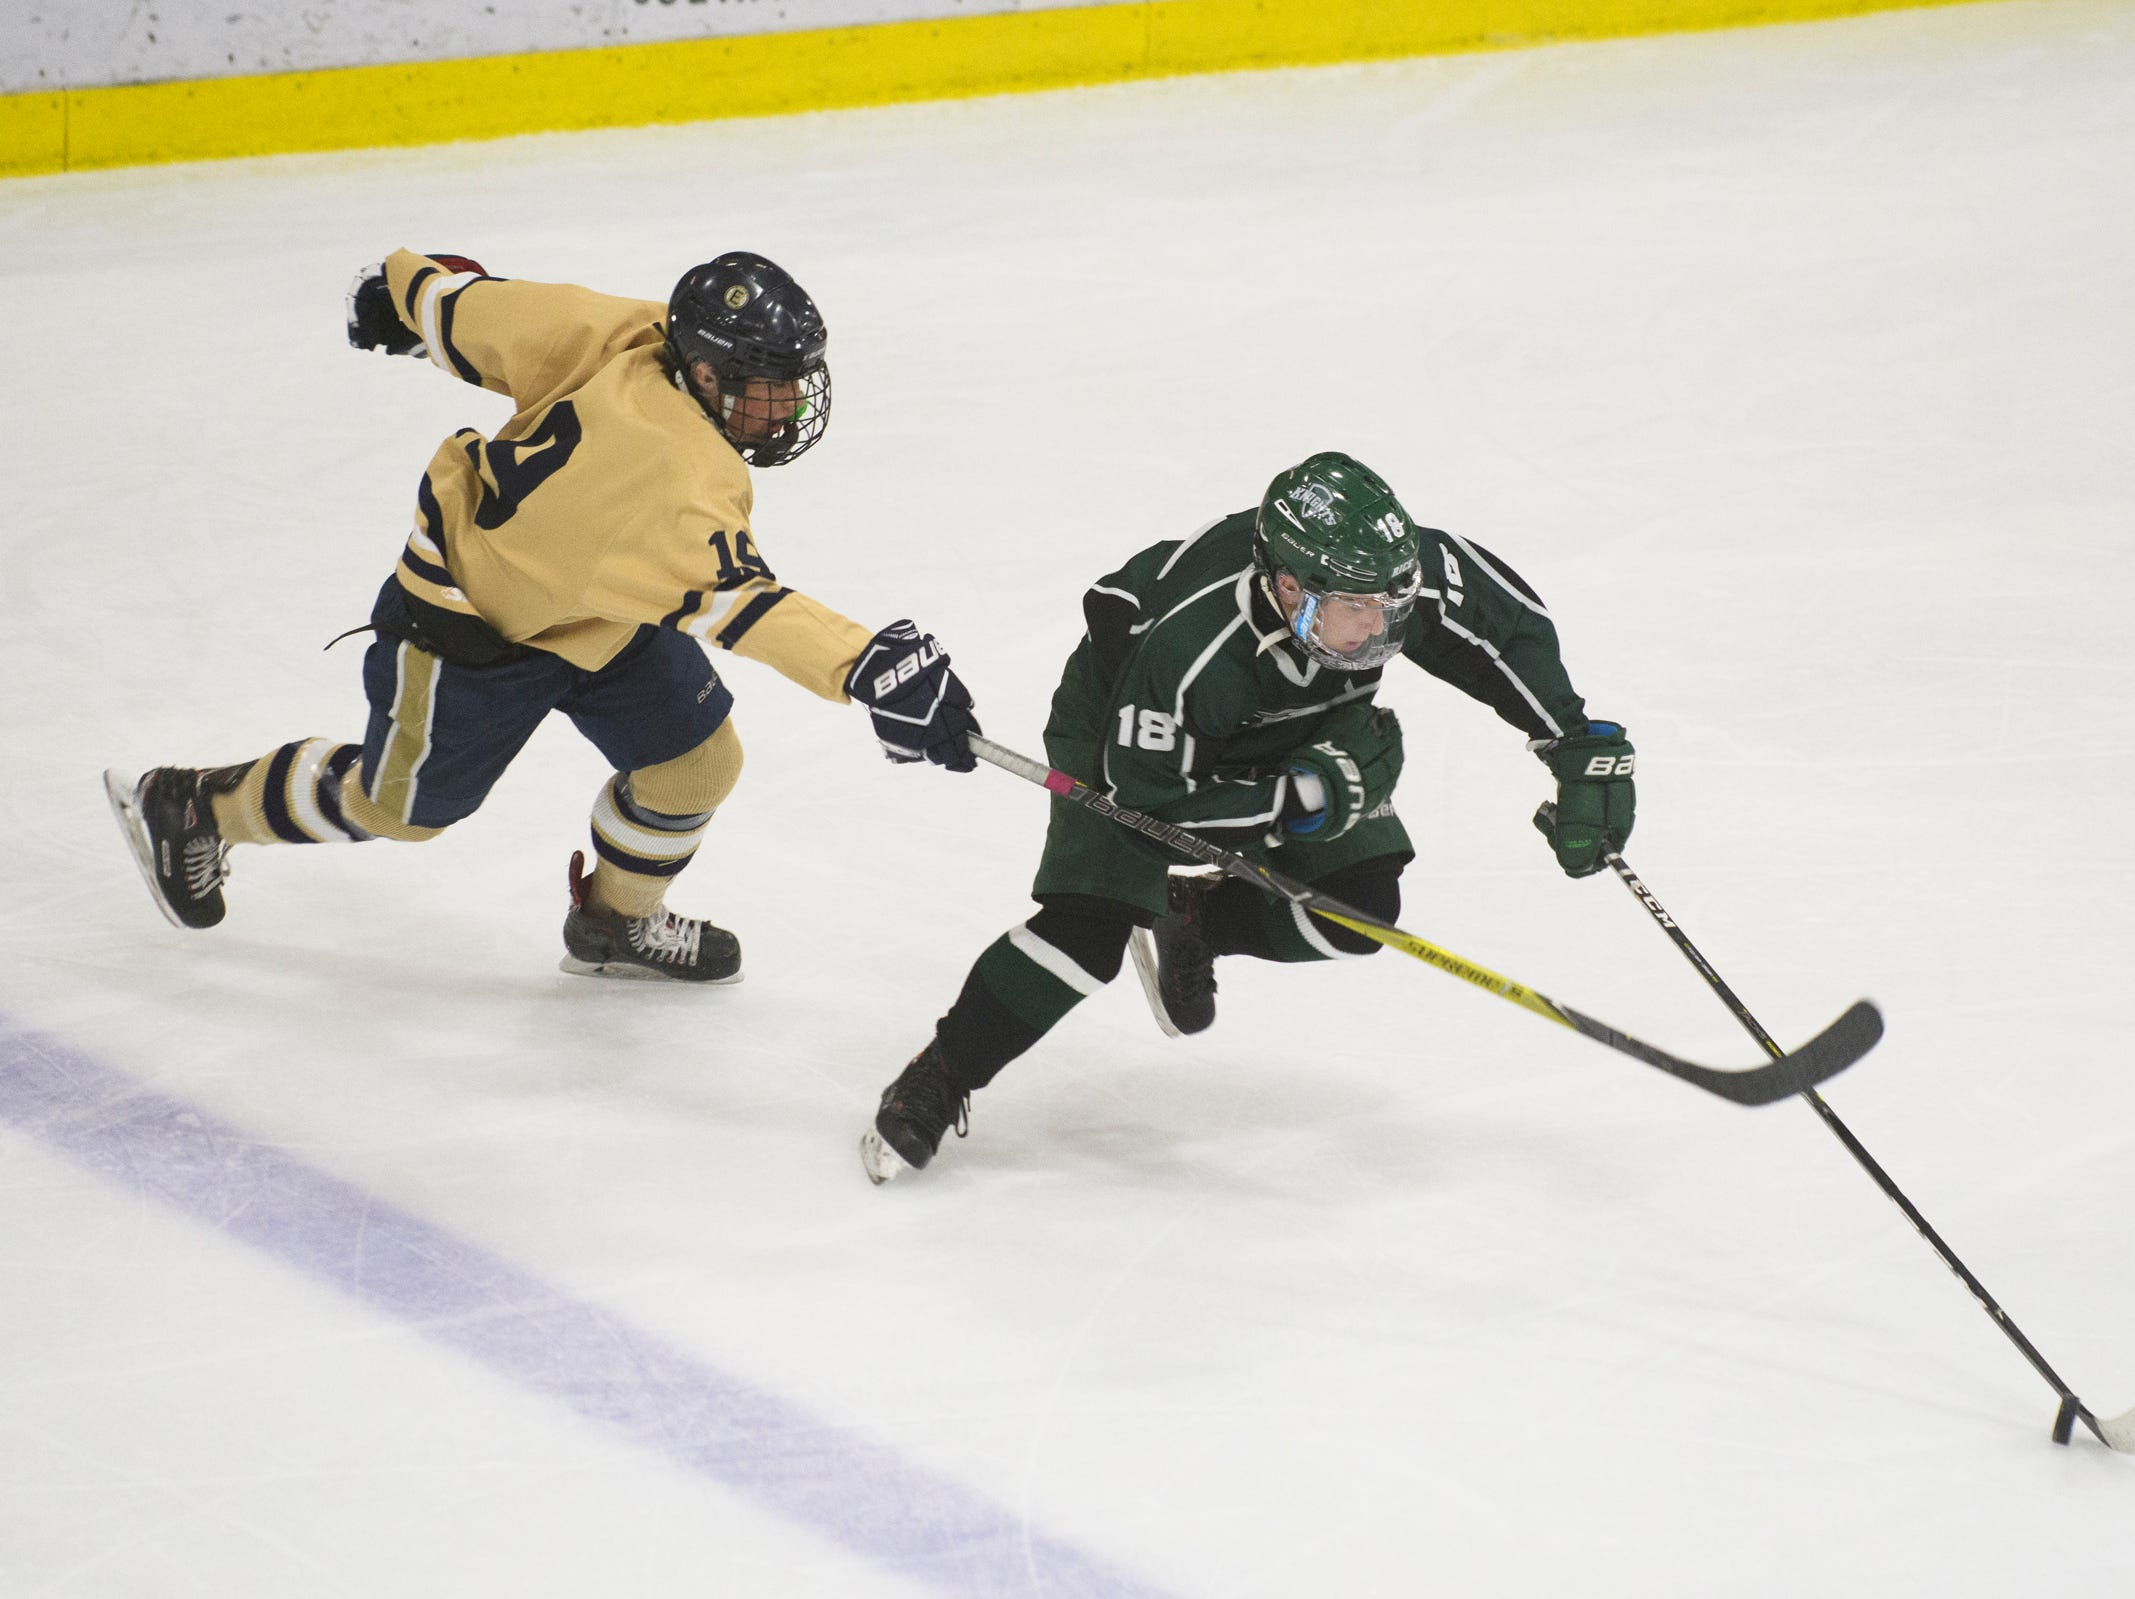 Rice's Sam Rubman (18) skates past Essex's Maxwell Line (19) with the puck during the DI boys hockey championship game between the Rice Green Knights and the Essex Hornets at Gutterson Field House on Wednesday night March 13, 2019 in Burlington, Vermont.